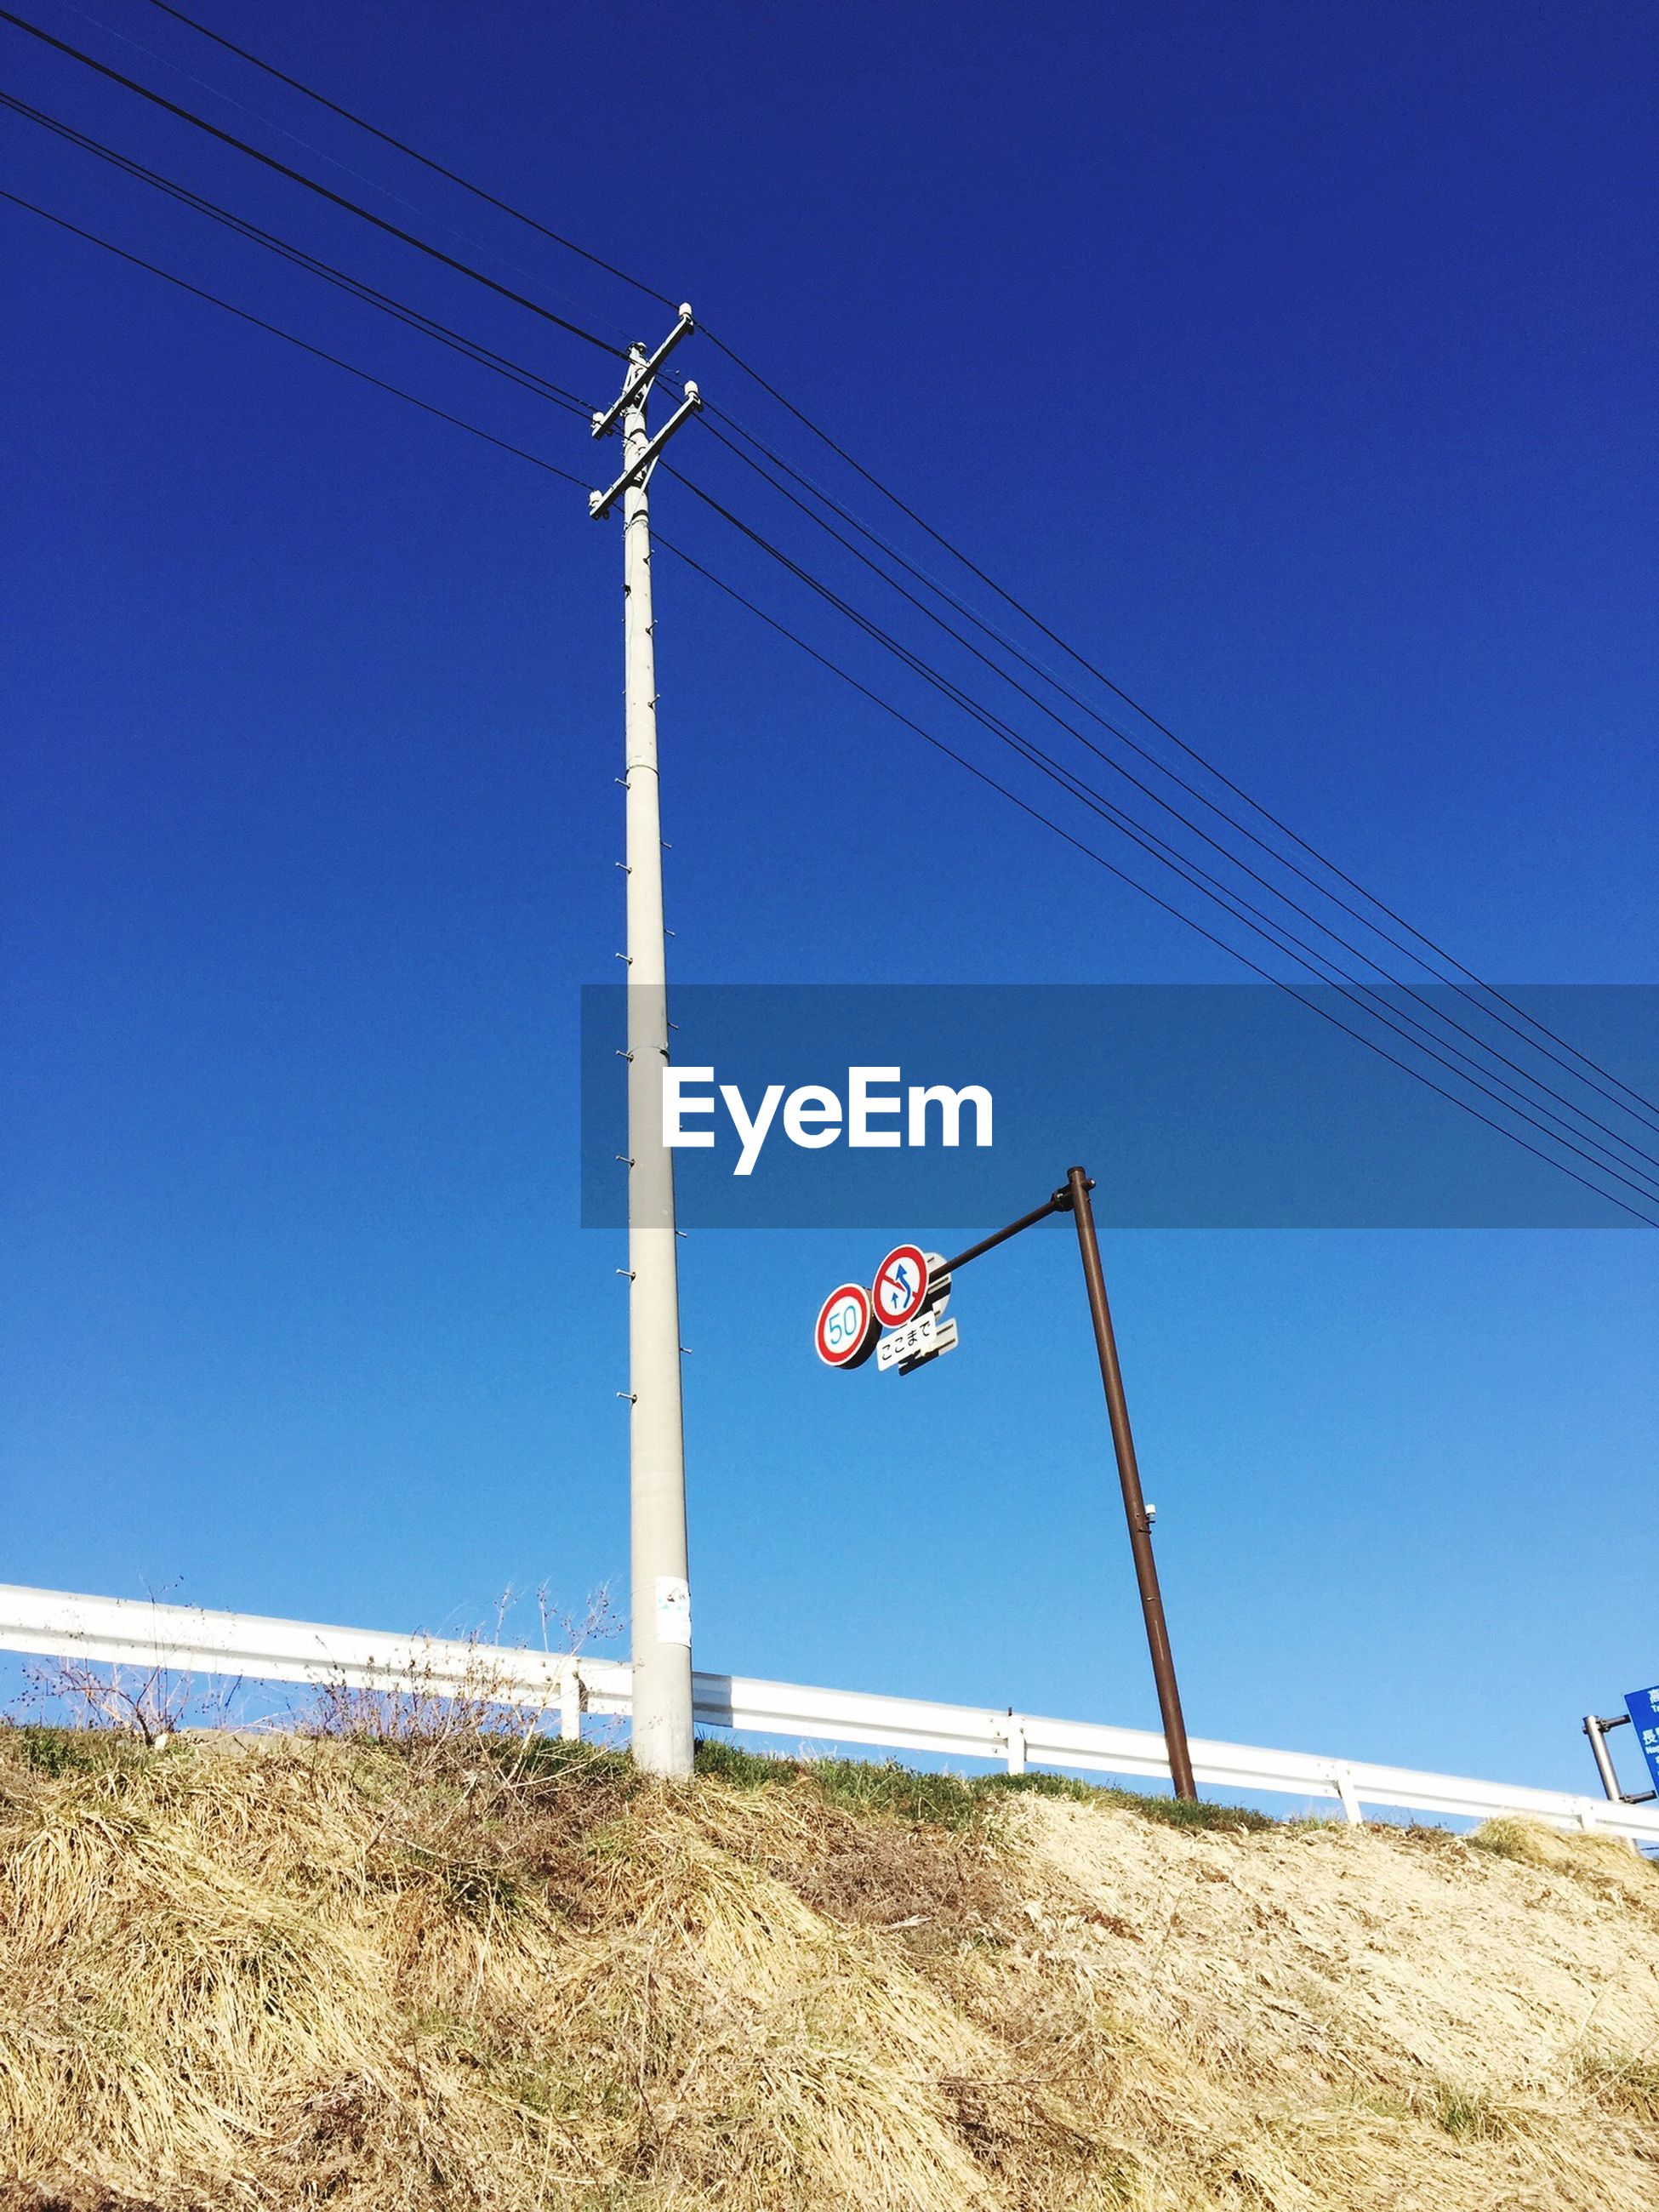 clear sky, blue, fuel and power generation, copy space, low angle view, power line, technology, cable, transportation, power supply, day, electricity pylon, electricity, environmental conservation, wind power, windmill, alternative energy, sunlight, pole, wind turbine